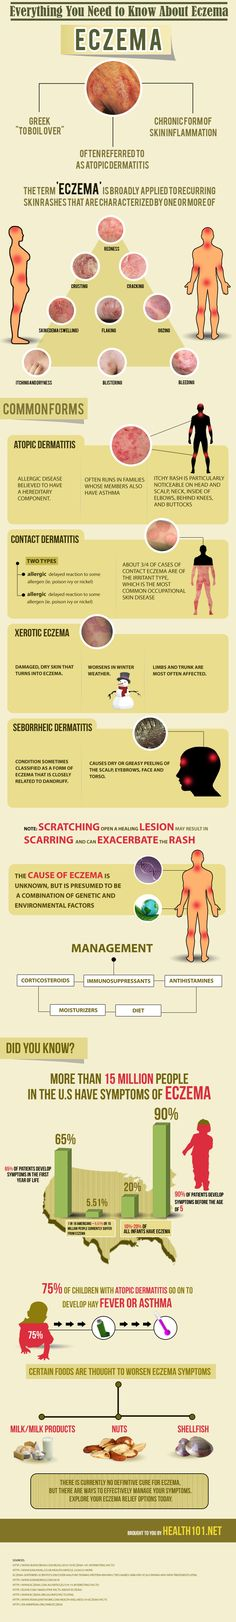 #Eczema Natural Treatment Infographic. Give Derma-Ease with Emu Oil a try! http://www.longviewfarms.com/Derma_Ease_psoriasis_eczema_cream_p/de4.htm